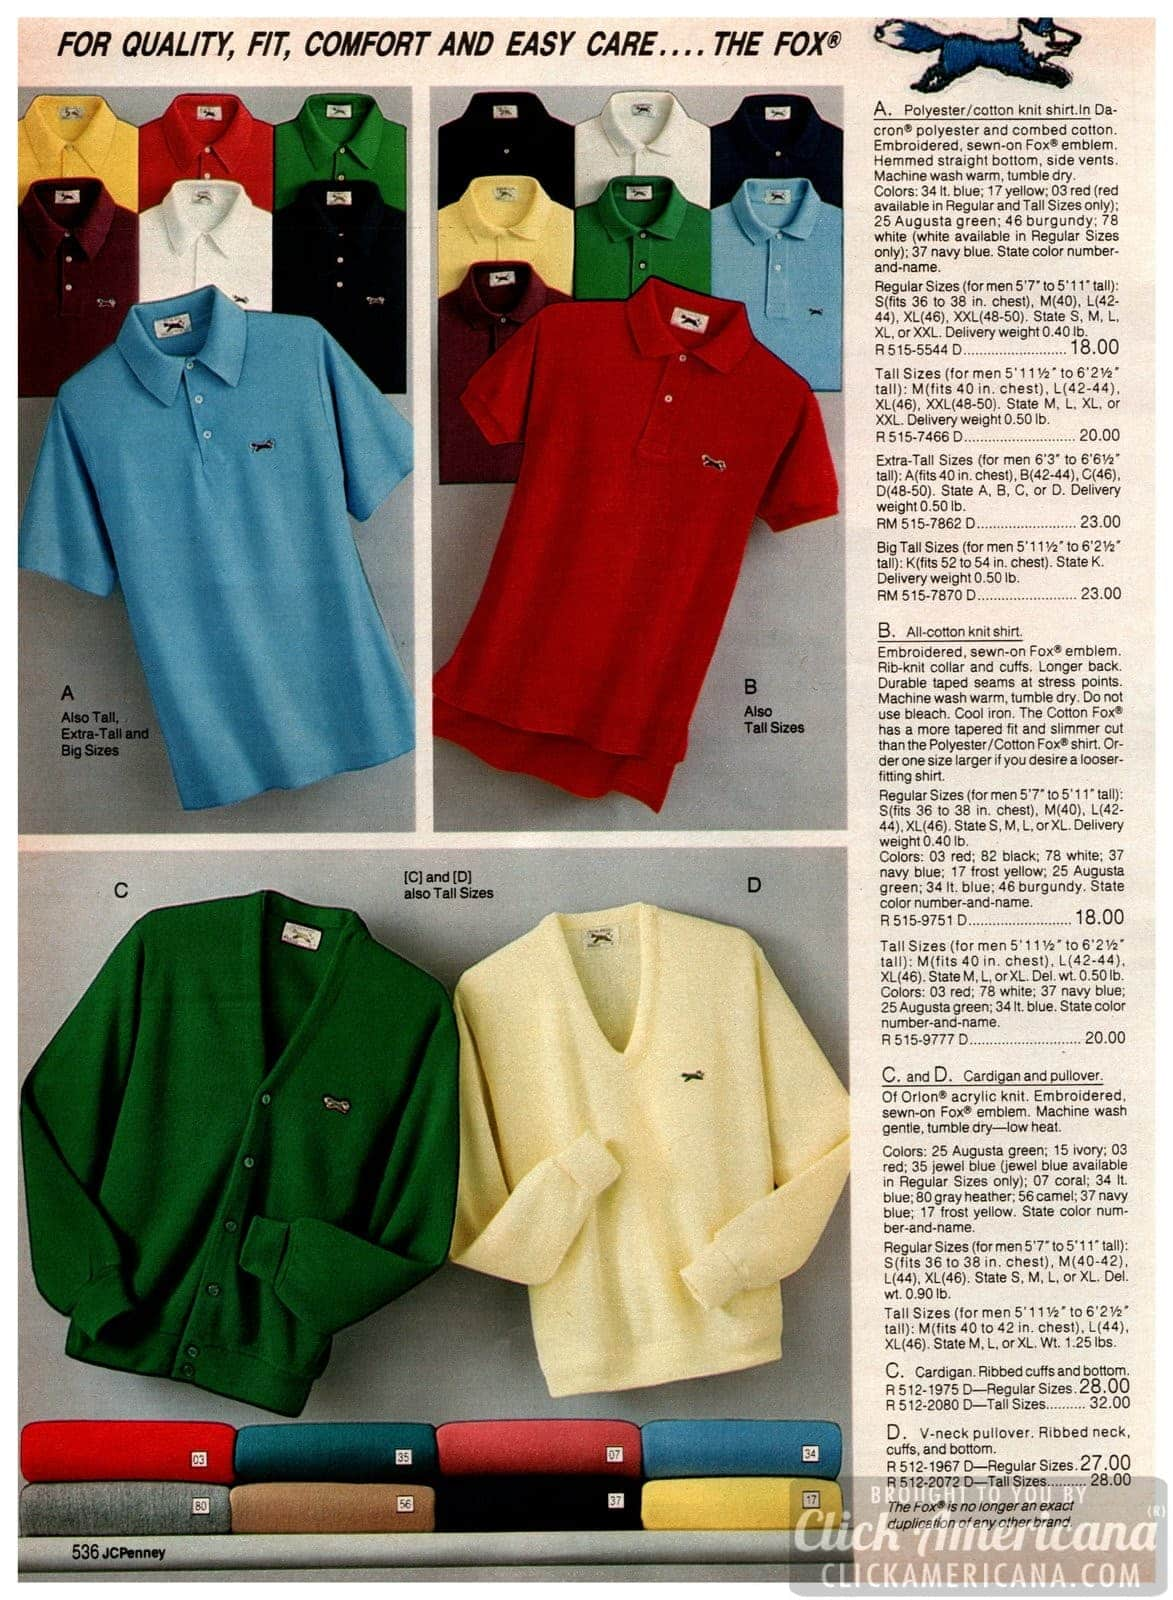 The Fox polo shirts for men and boys